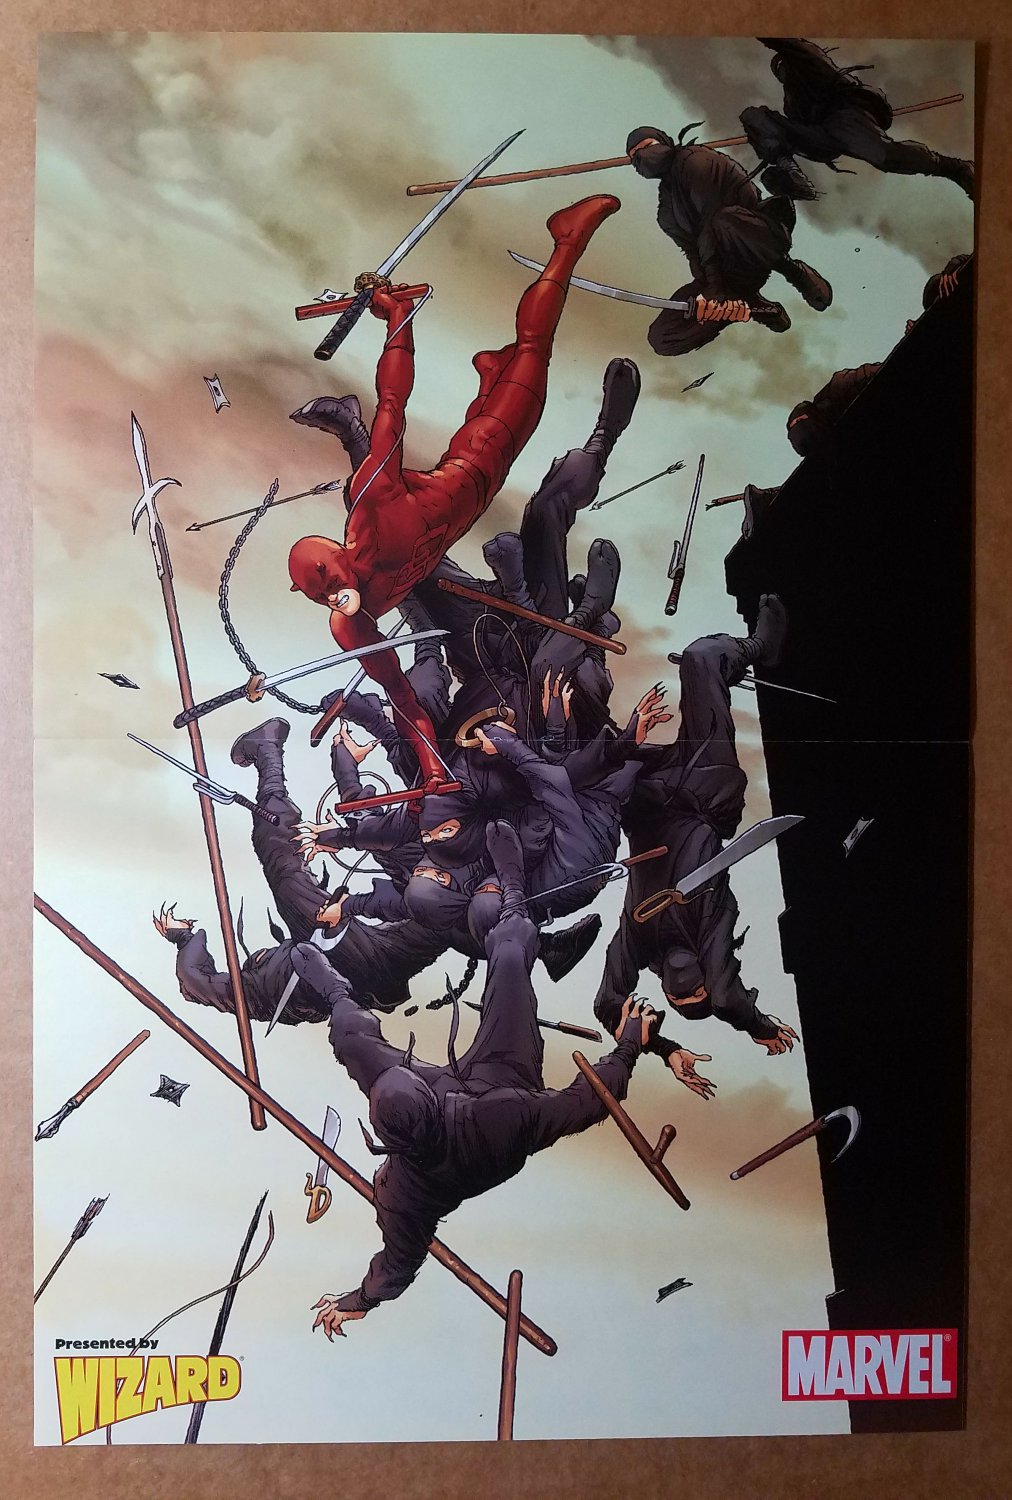 Daredevil Marvel Comics Poster by Frank Quitely